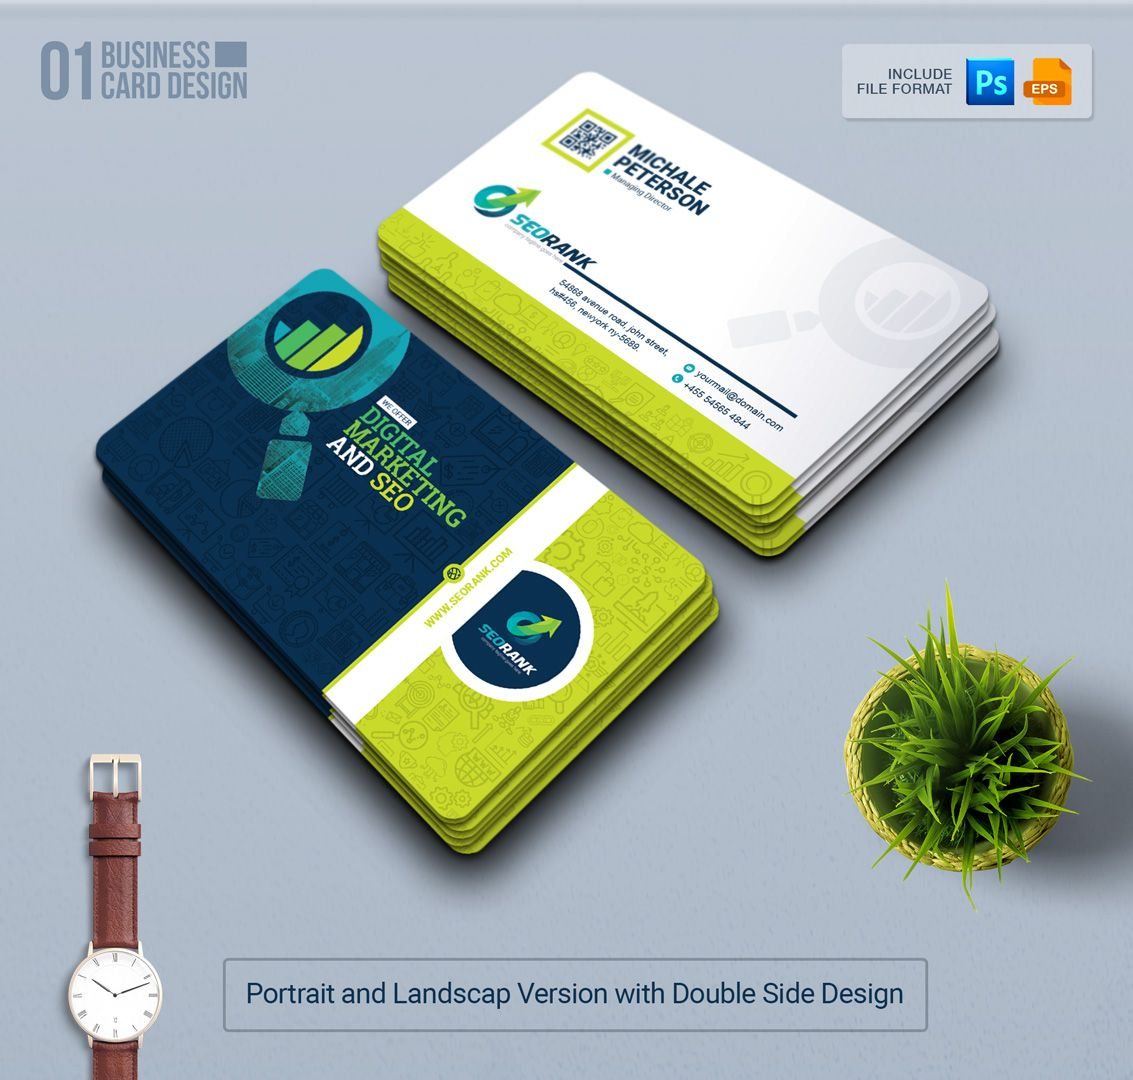 Branding Stationery Bundle For Seo And Digital Marketing Agency Or Company 66283 Marketing Business Card Landscaping Business Cards Digital Marketing Business